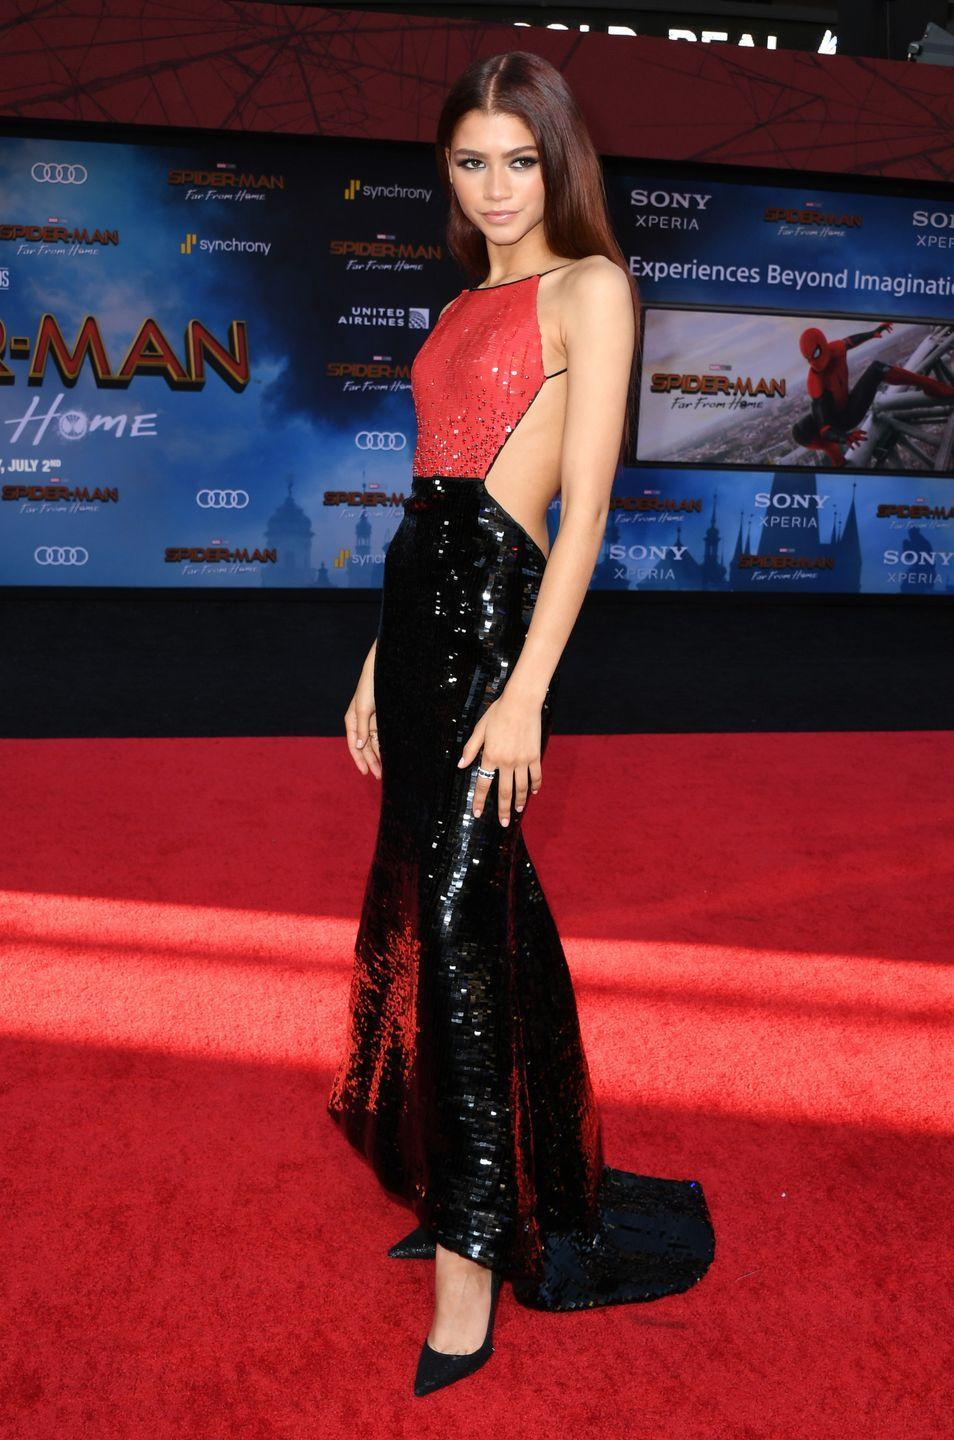 <p>She wore this hella chic interpretation of the Spider-Man suit to the <em>Spider-Man: Far From Home </em>premiere. The backless Armani Privé gown was just delightfully on the nose.</p>